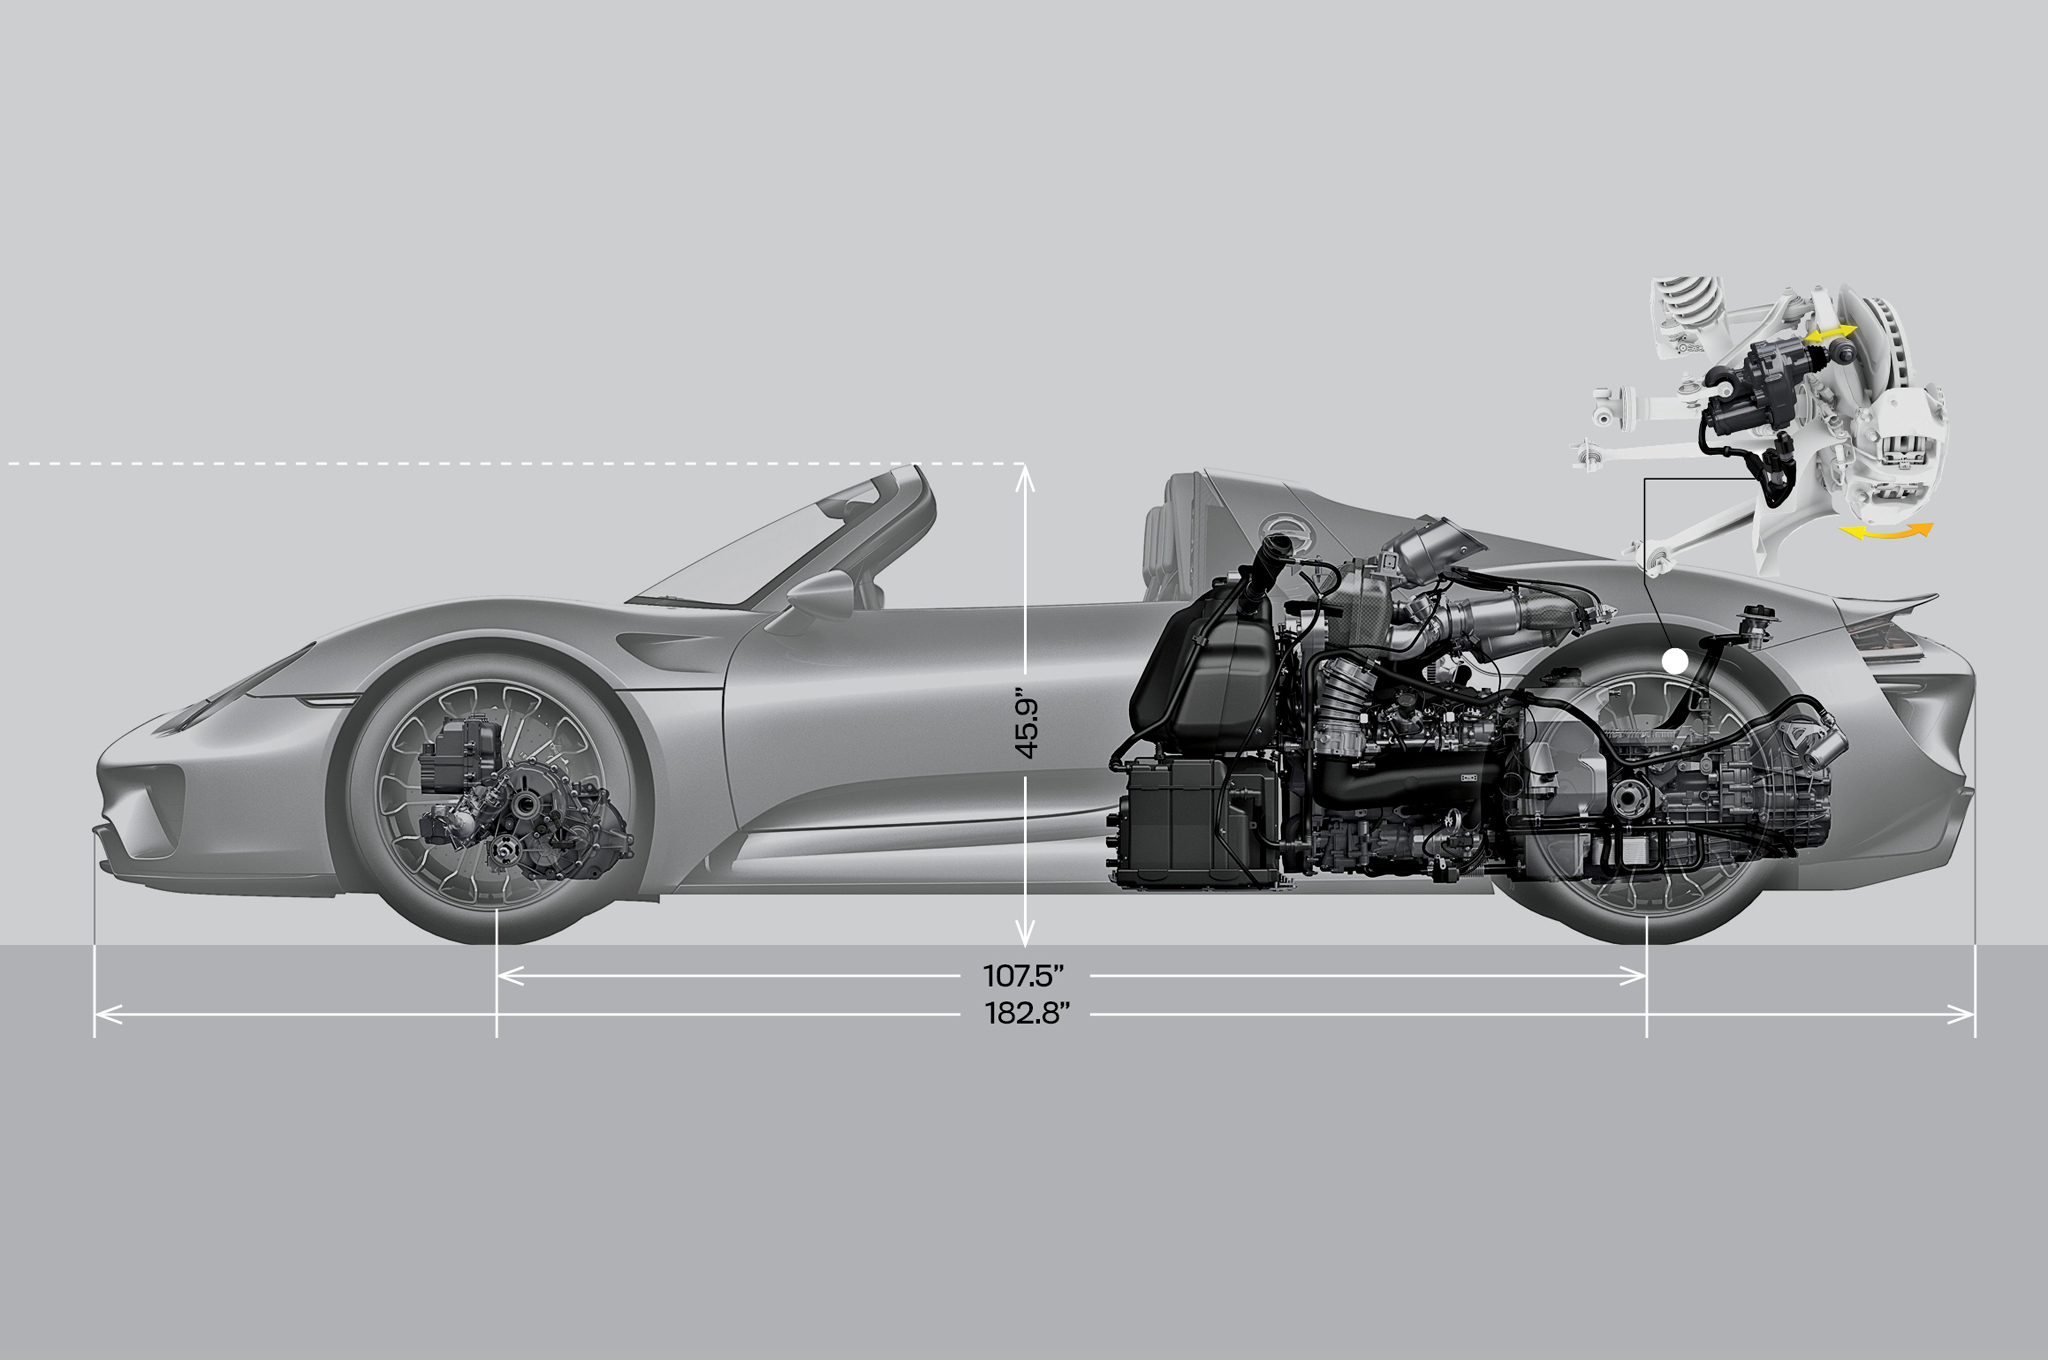 Hybrid Engine Diagram Of Mclaren S Another Wiring Diagrams 1987 Dodge Diplomat Wiper The Hypercar Blueprint Motor Trend Rh Motortrend Com Animation Car